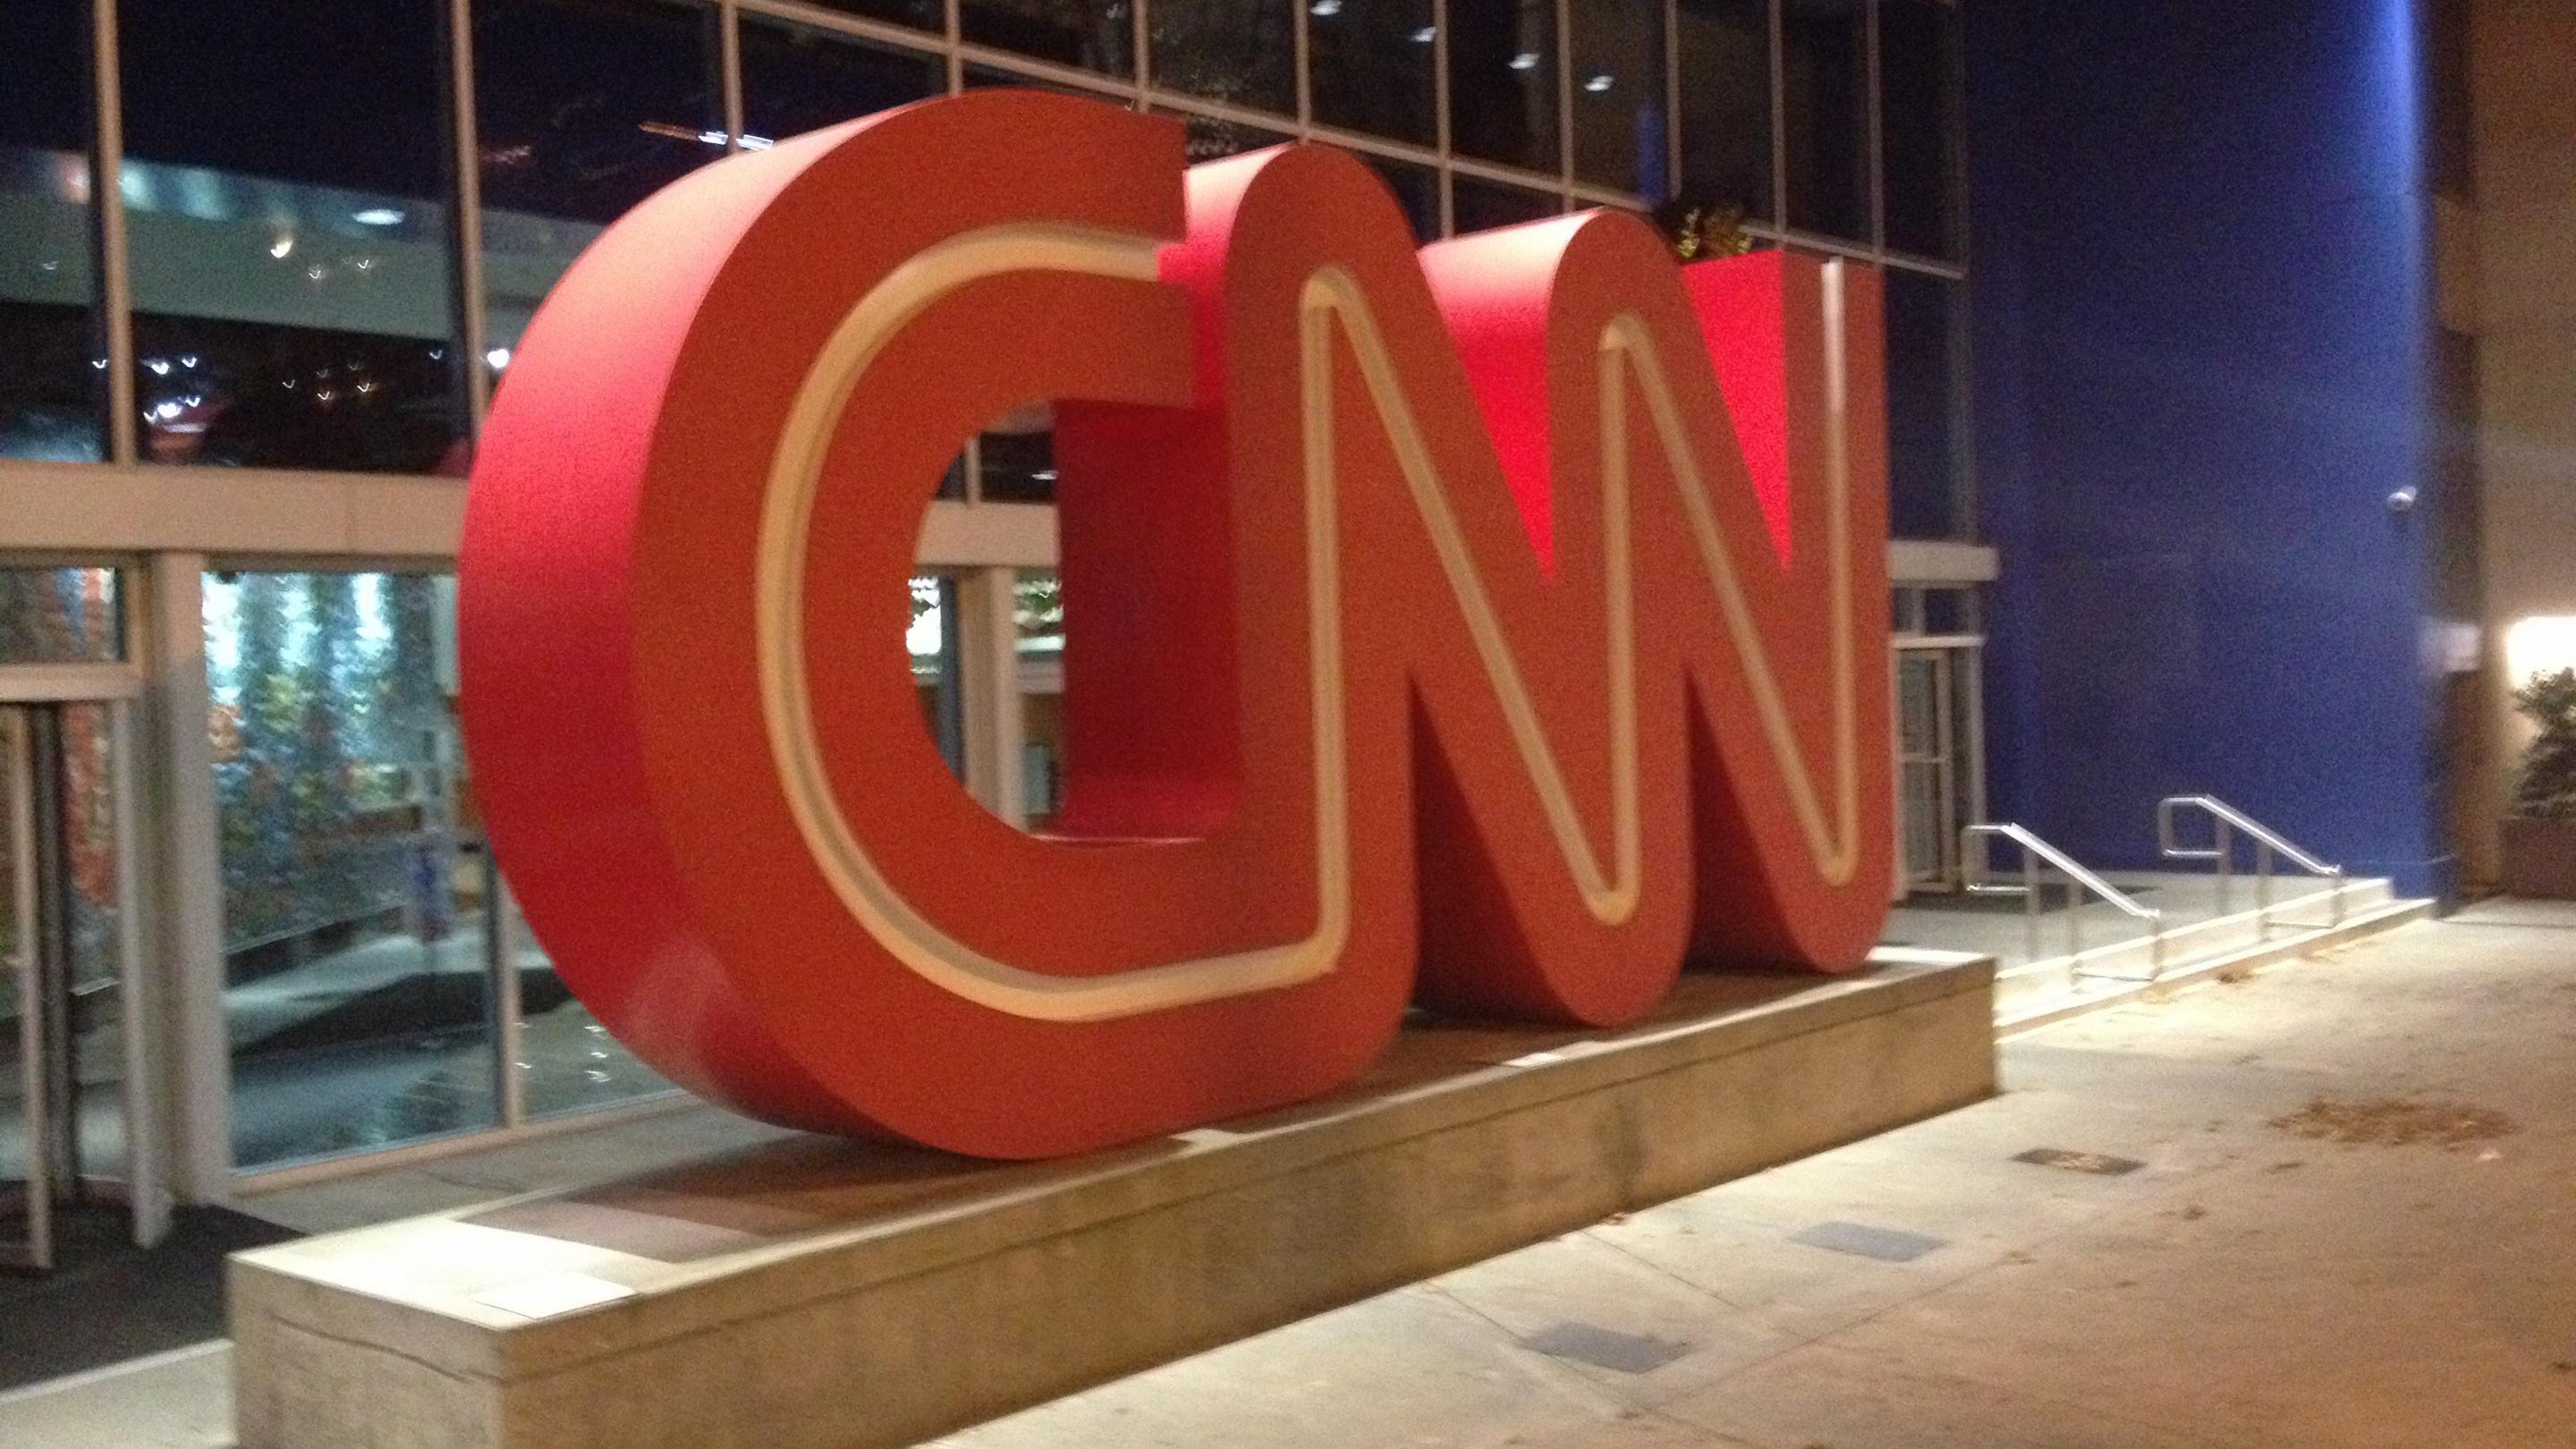 Lawsuit claims CNN is 'rife with racism'